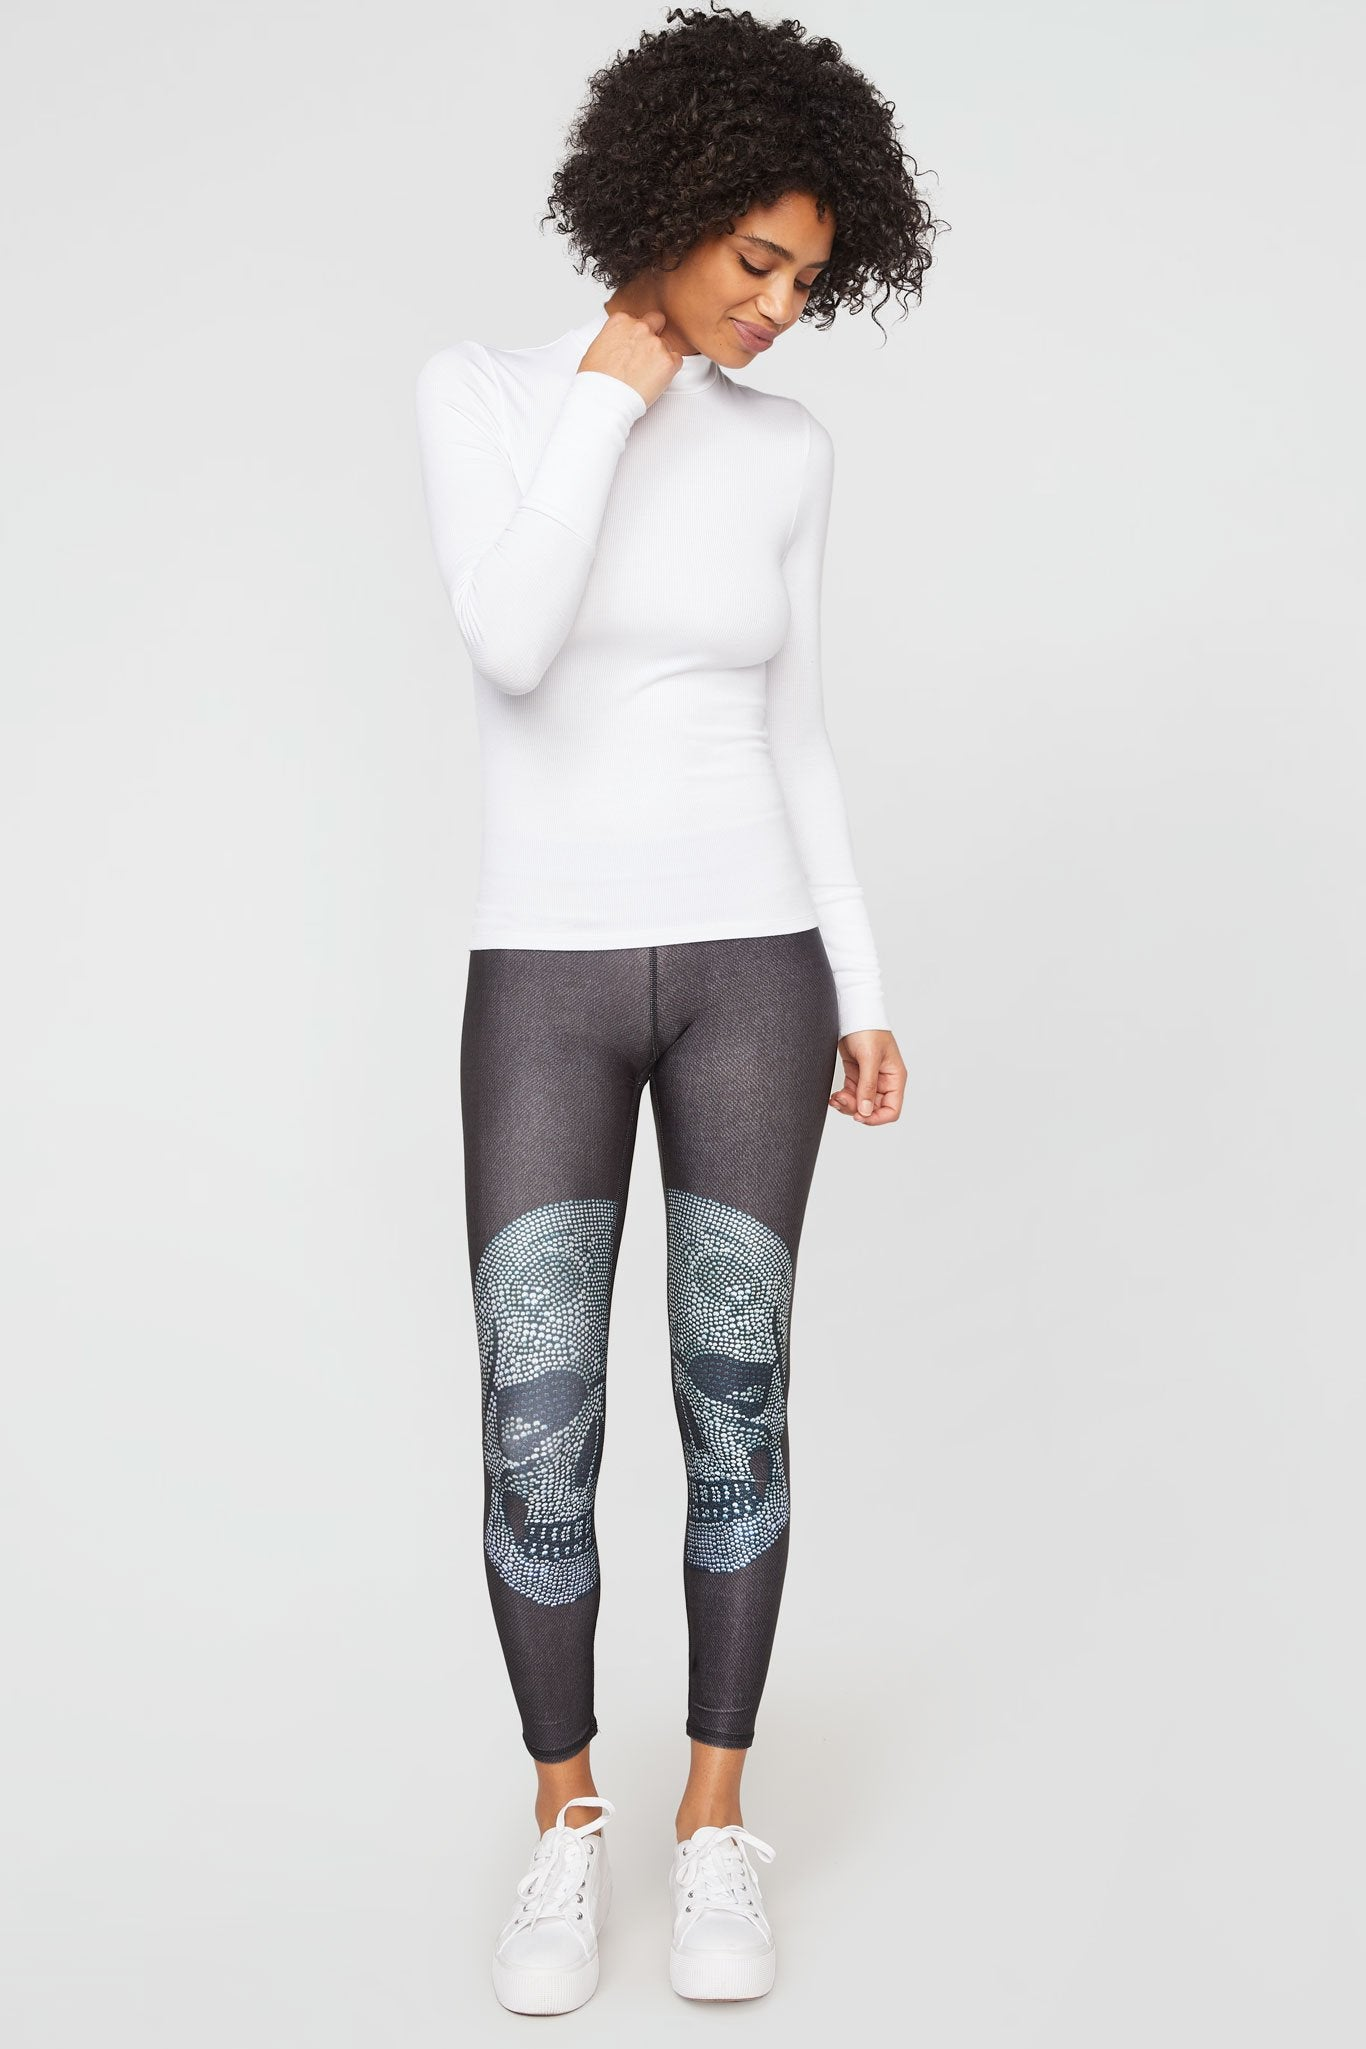 Crystal Skull Hi-Shine Leggings